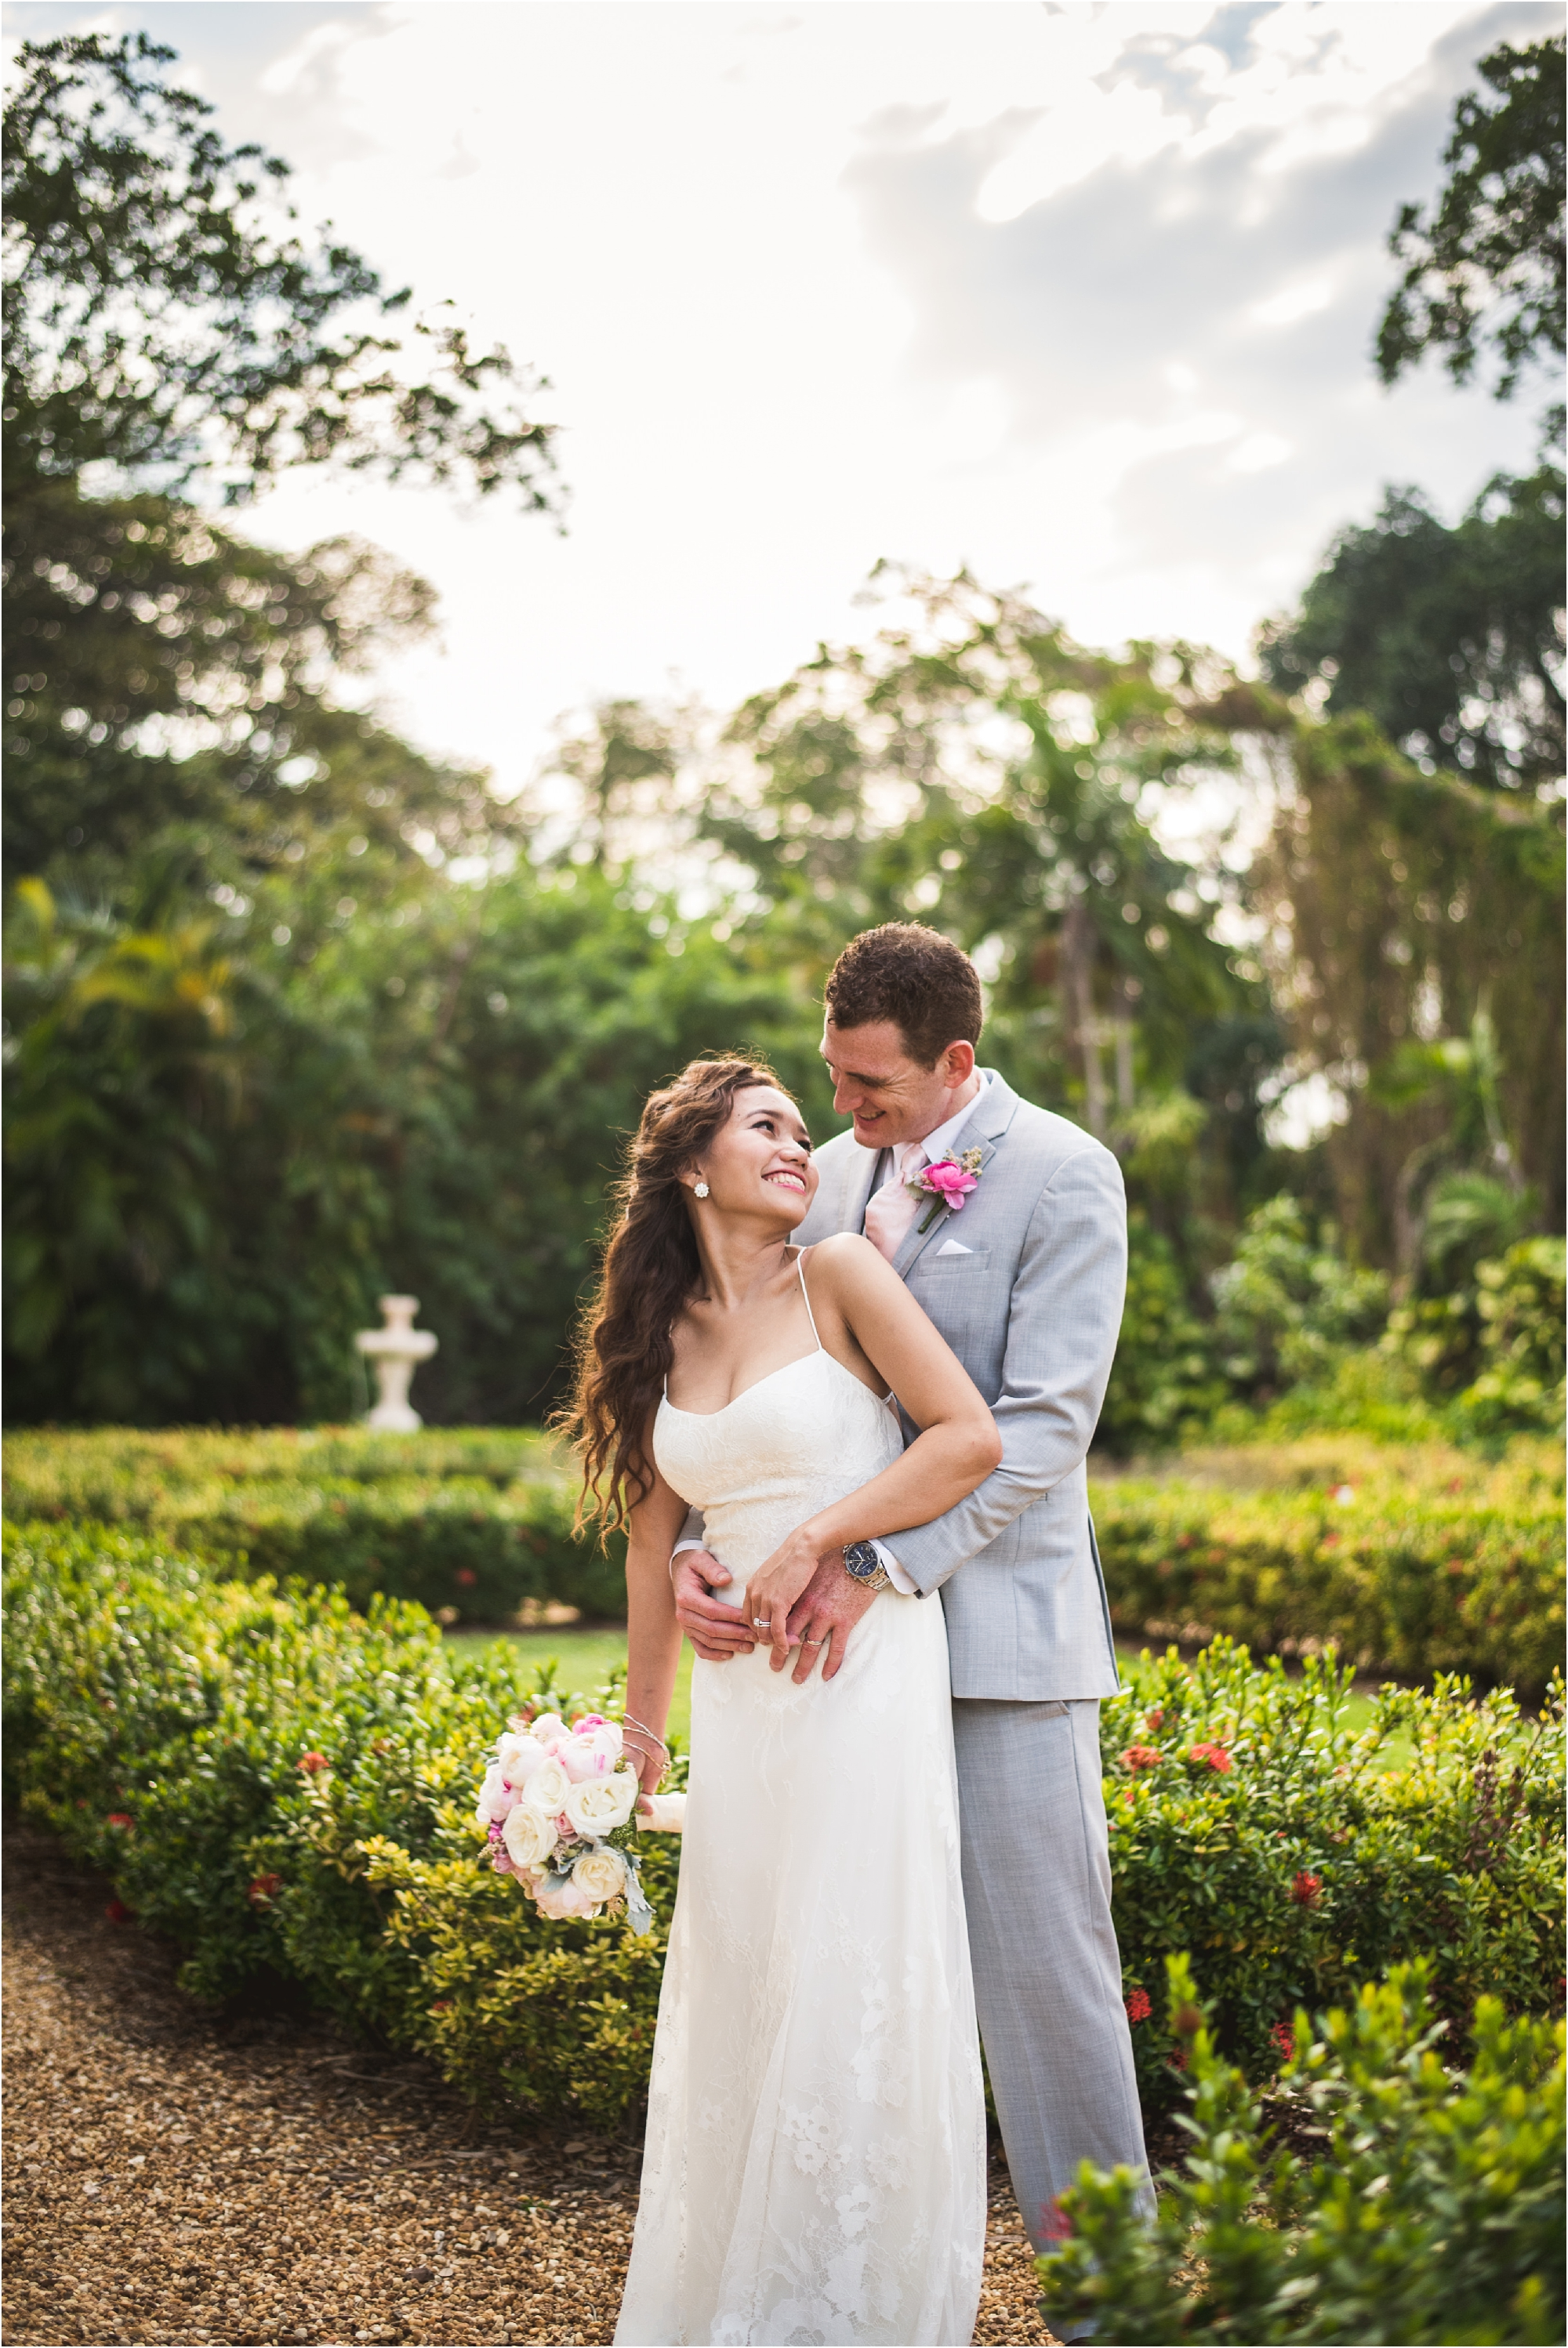 Spanish-Monastery-miami-beach-outdoor-elegant-wedding-photographer-jessenia-gonzalez_1212.jpg